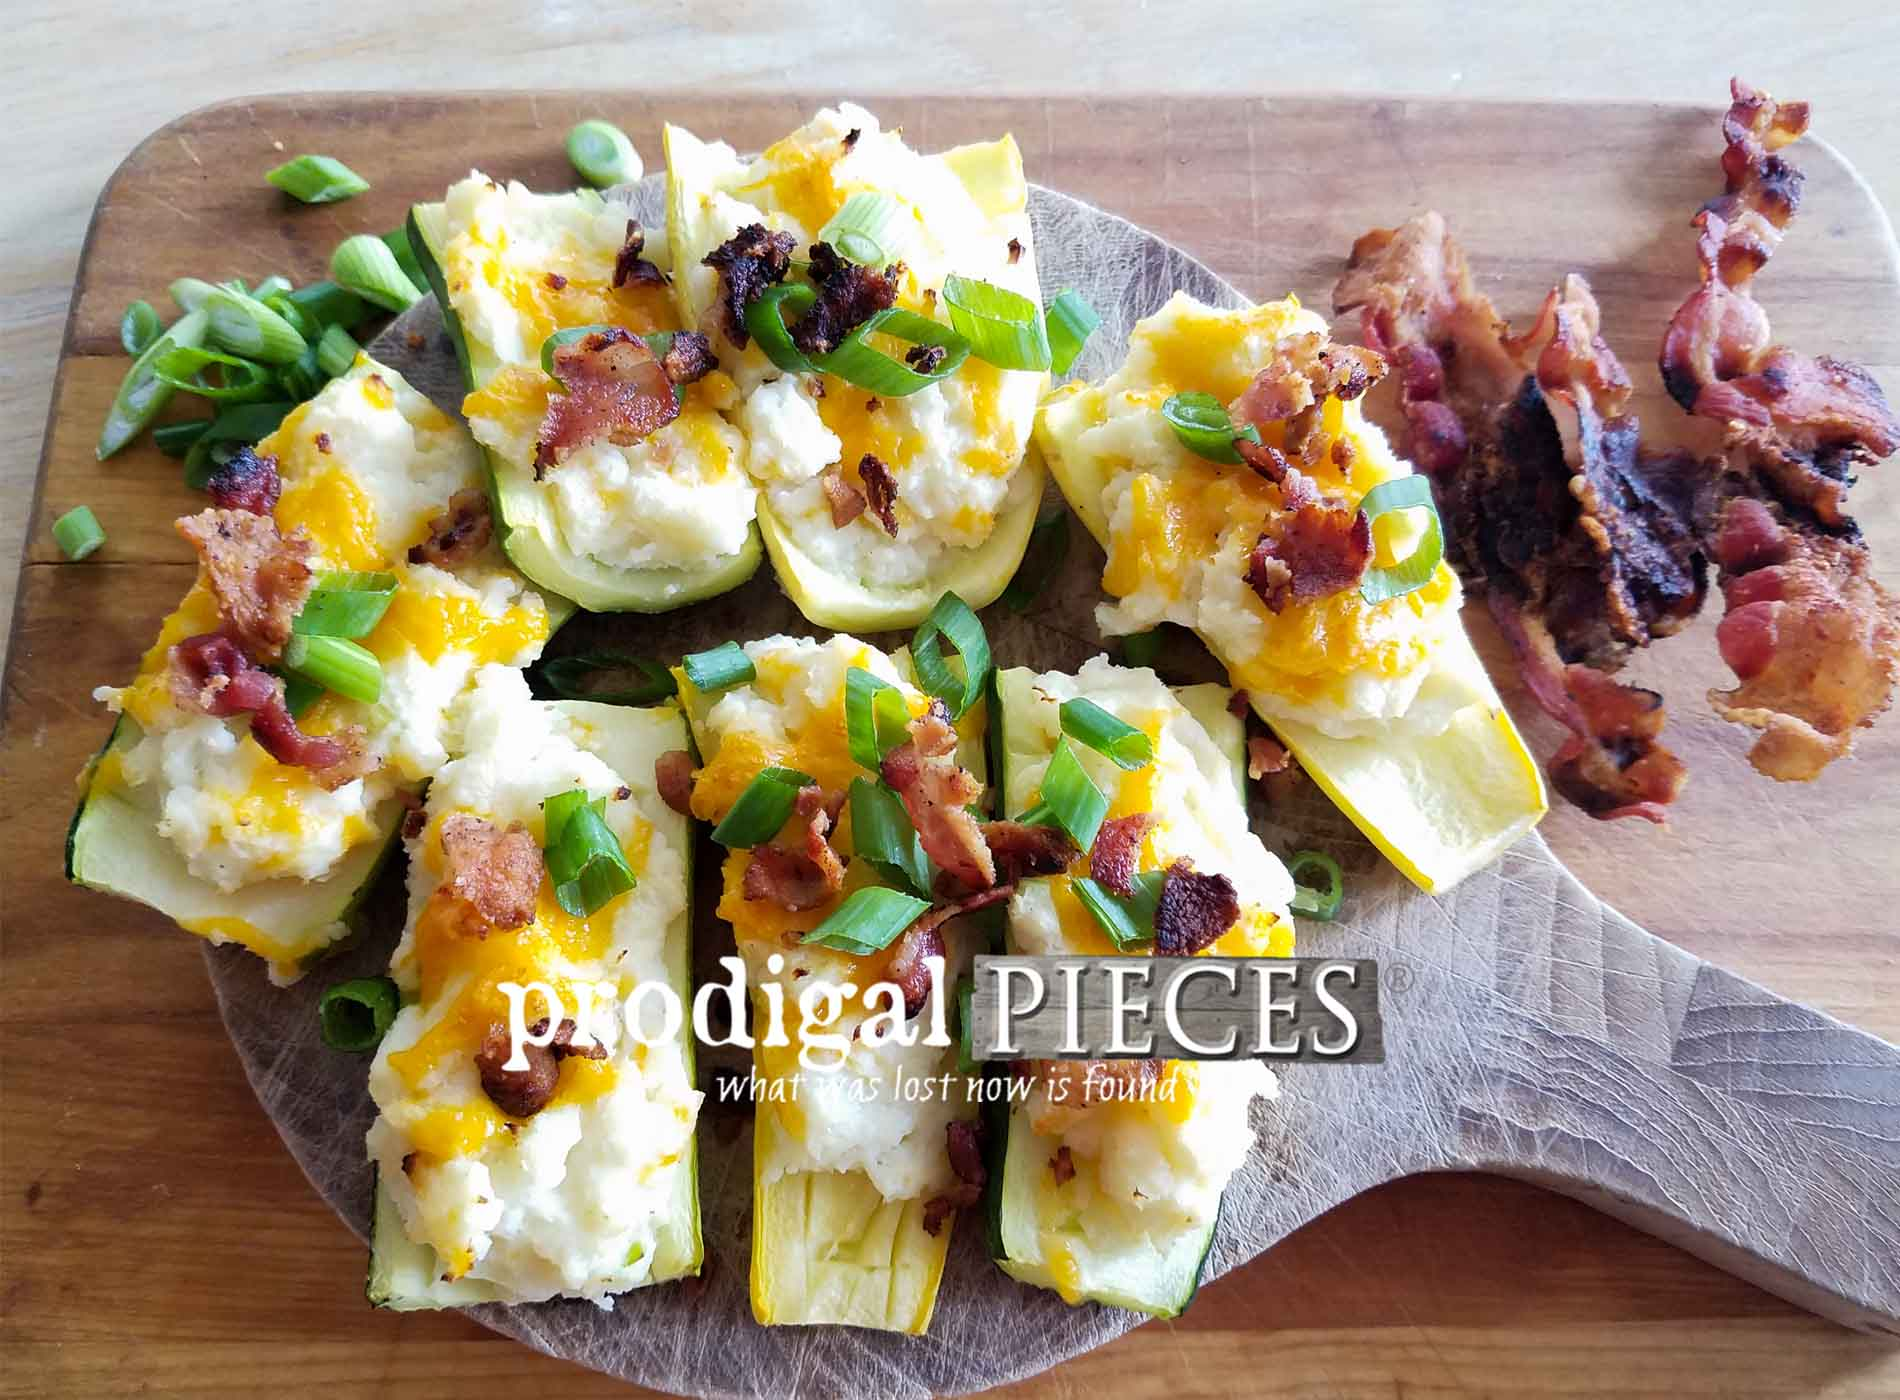 Featured Potatoless Twice Baked Potatoes by Larissa of Prodigal Pieces | prodigalpieces.com